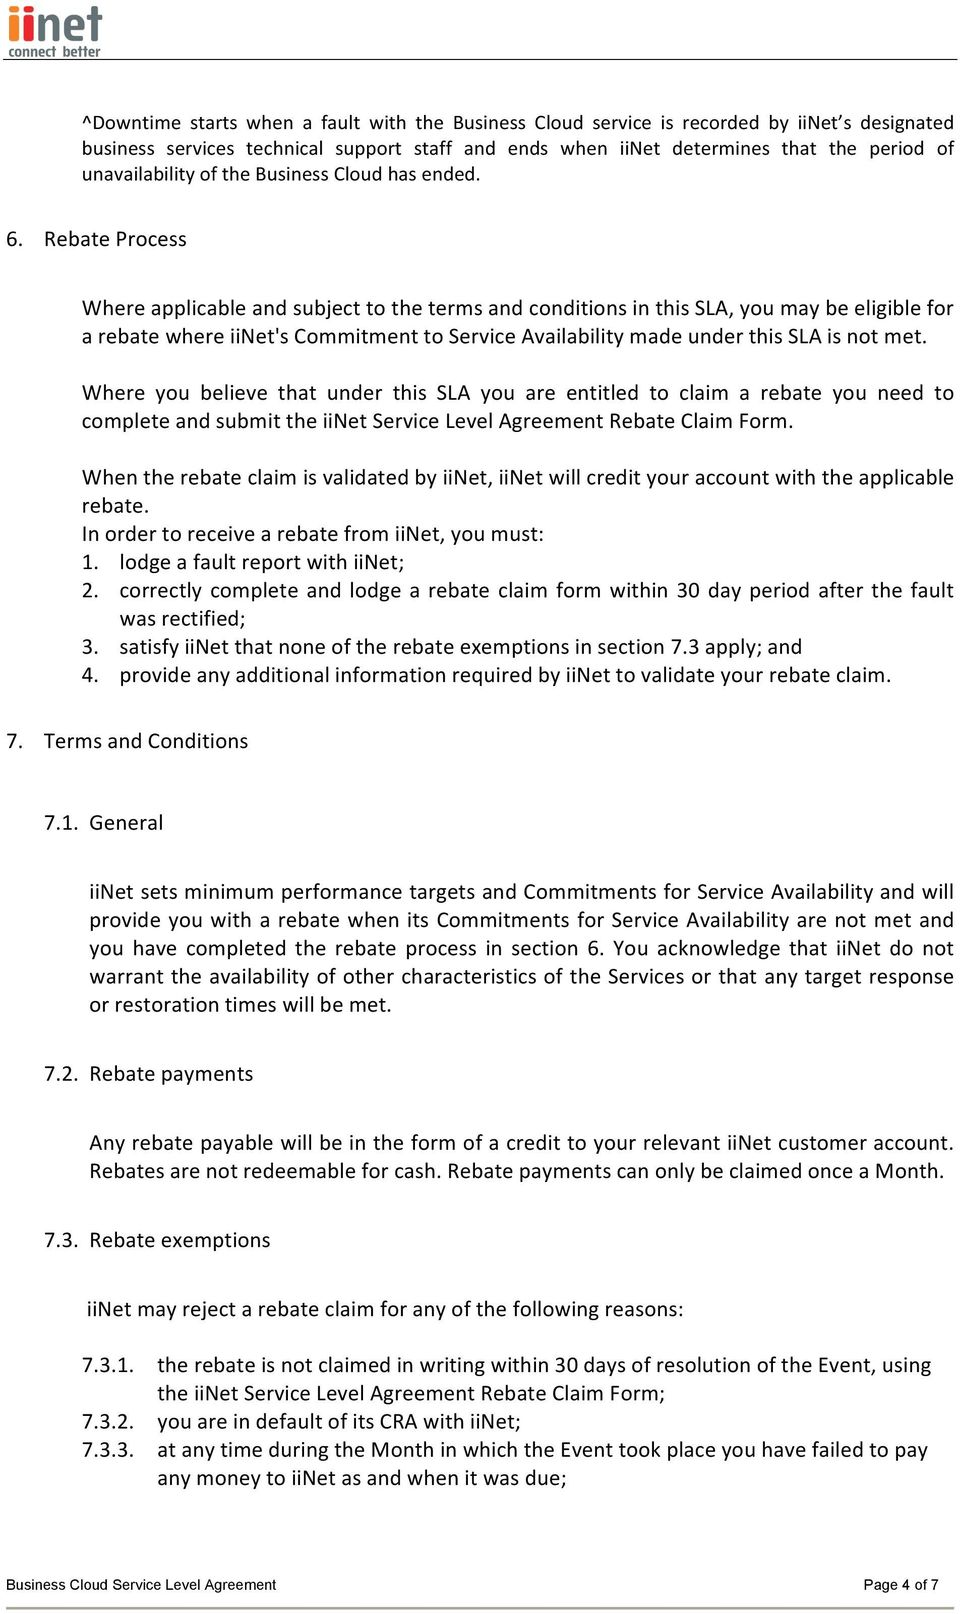 Rebate Process Where applicable and subject to the terms and conditions in this SLA, you may be eligible for a rebate where iinet's Commitment to Service Availability made under this SLA is not met.